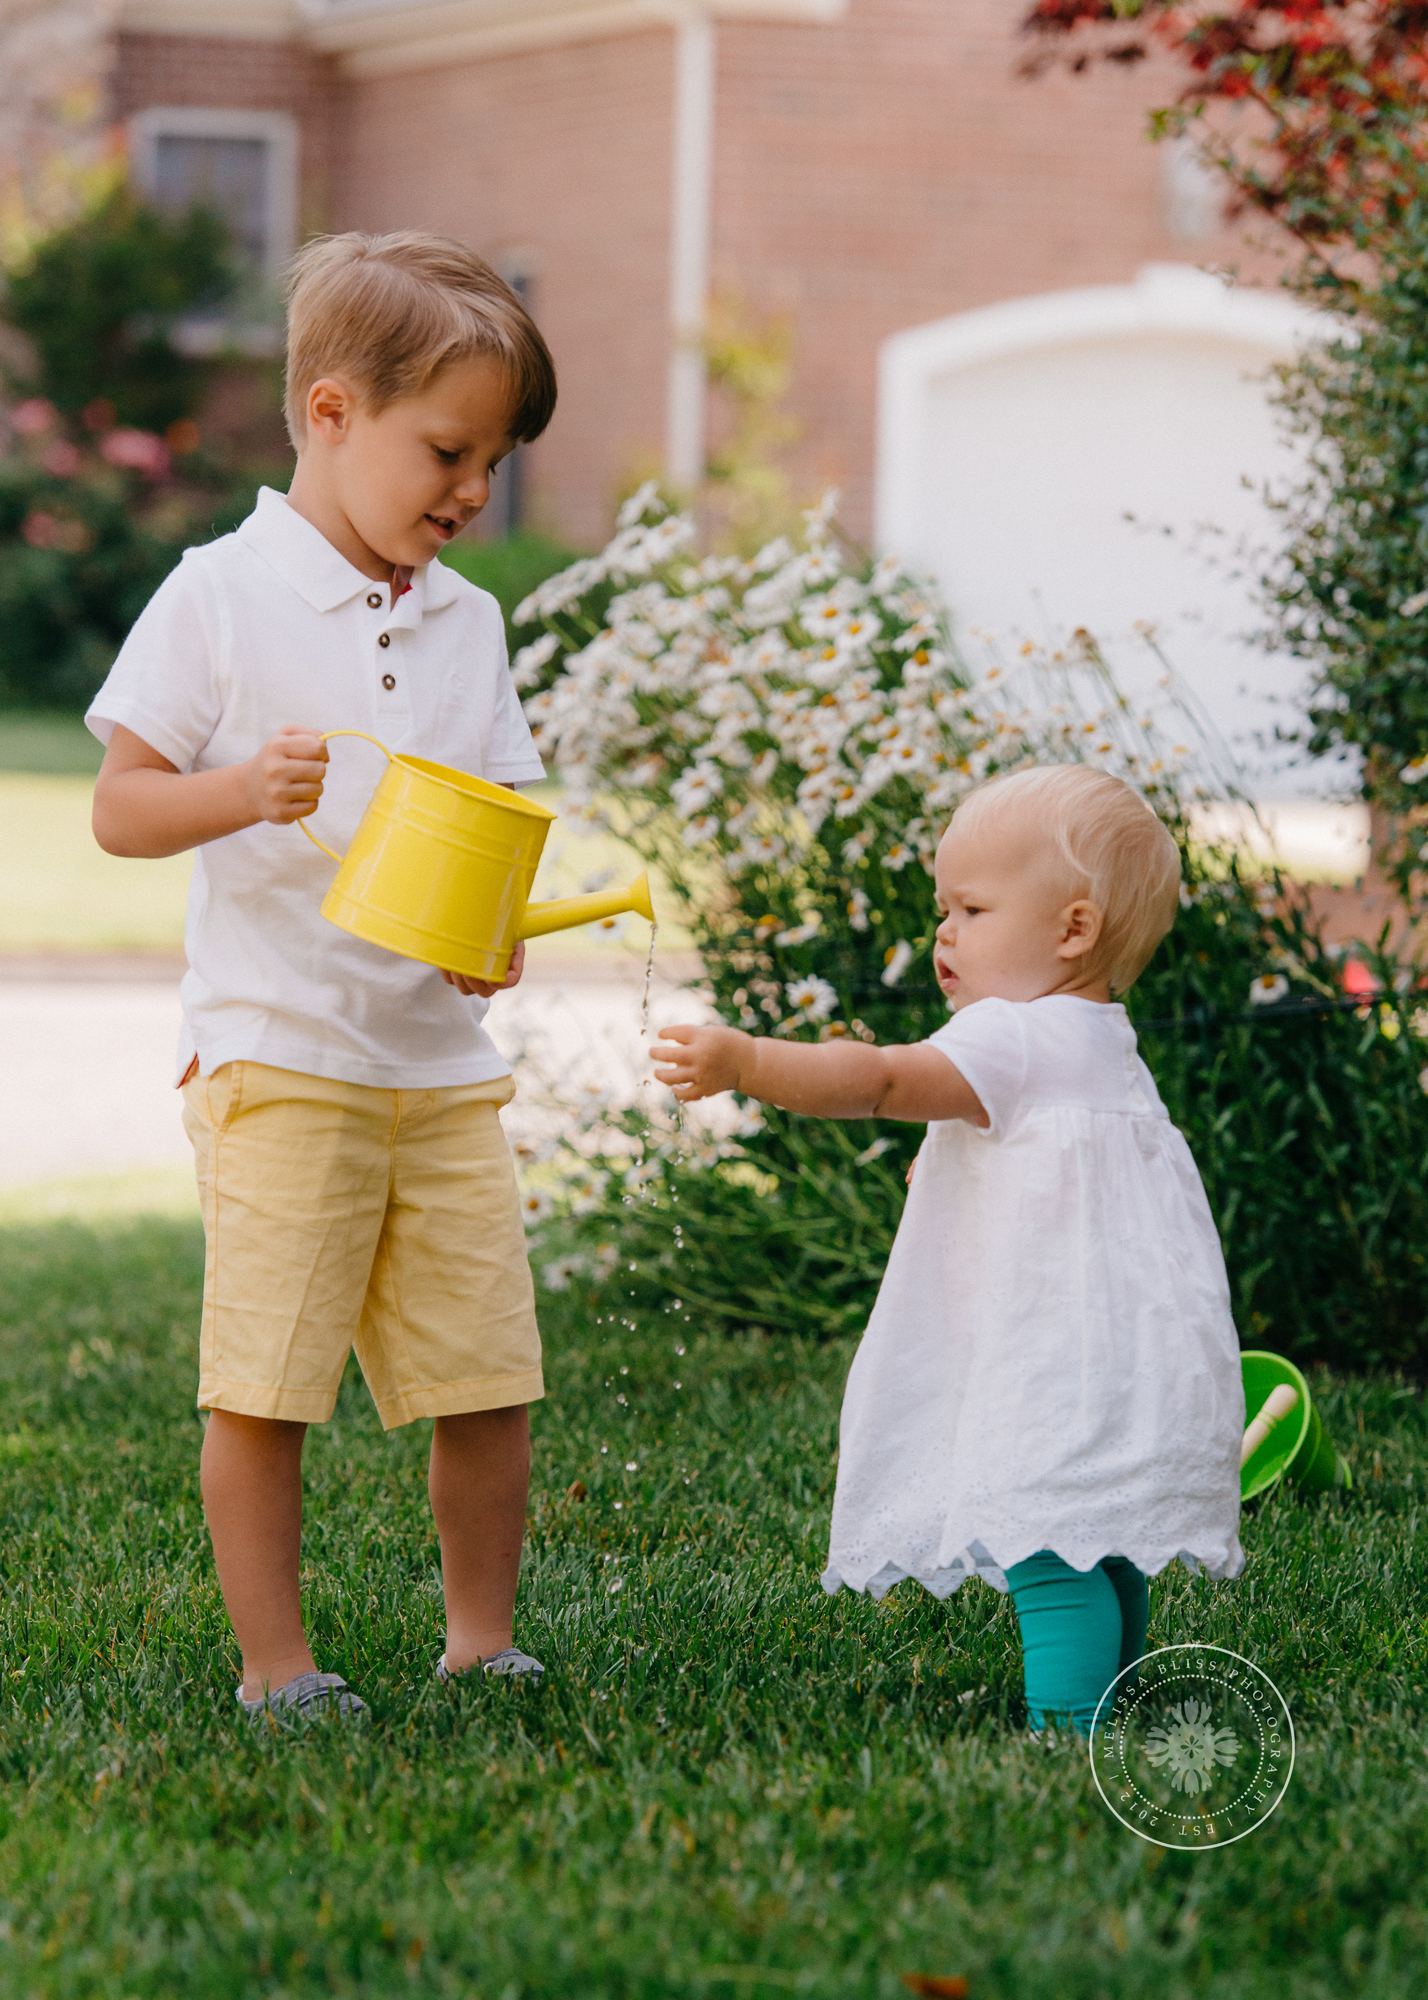 boy-and-girl-watering-spring-flowers-chesapeake-family-photographer-melissa-bliss-photography